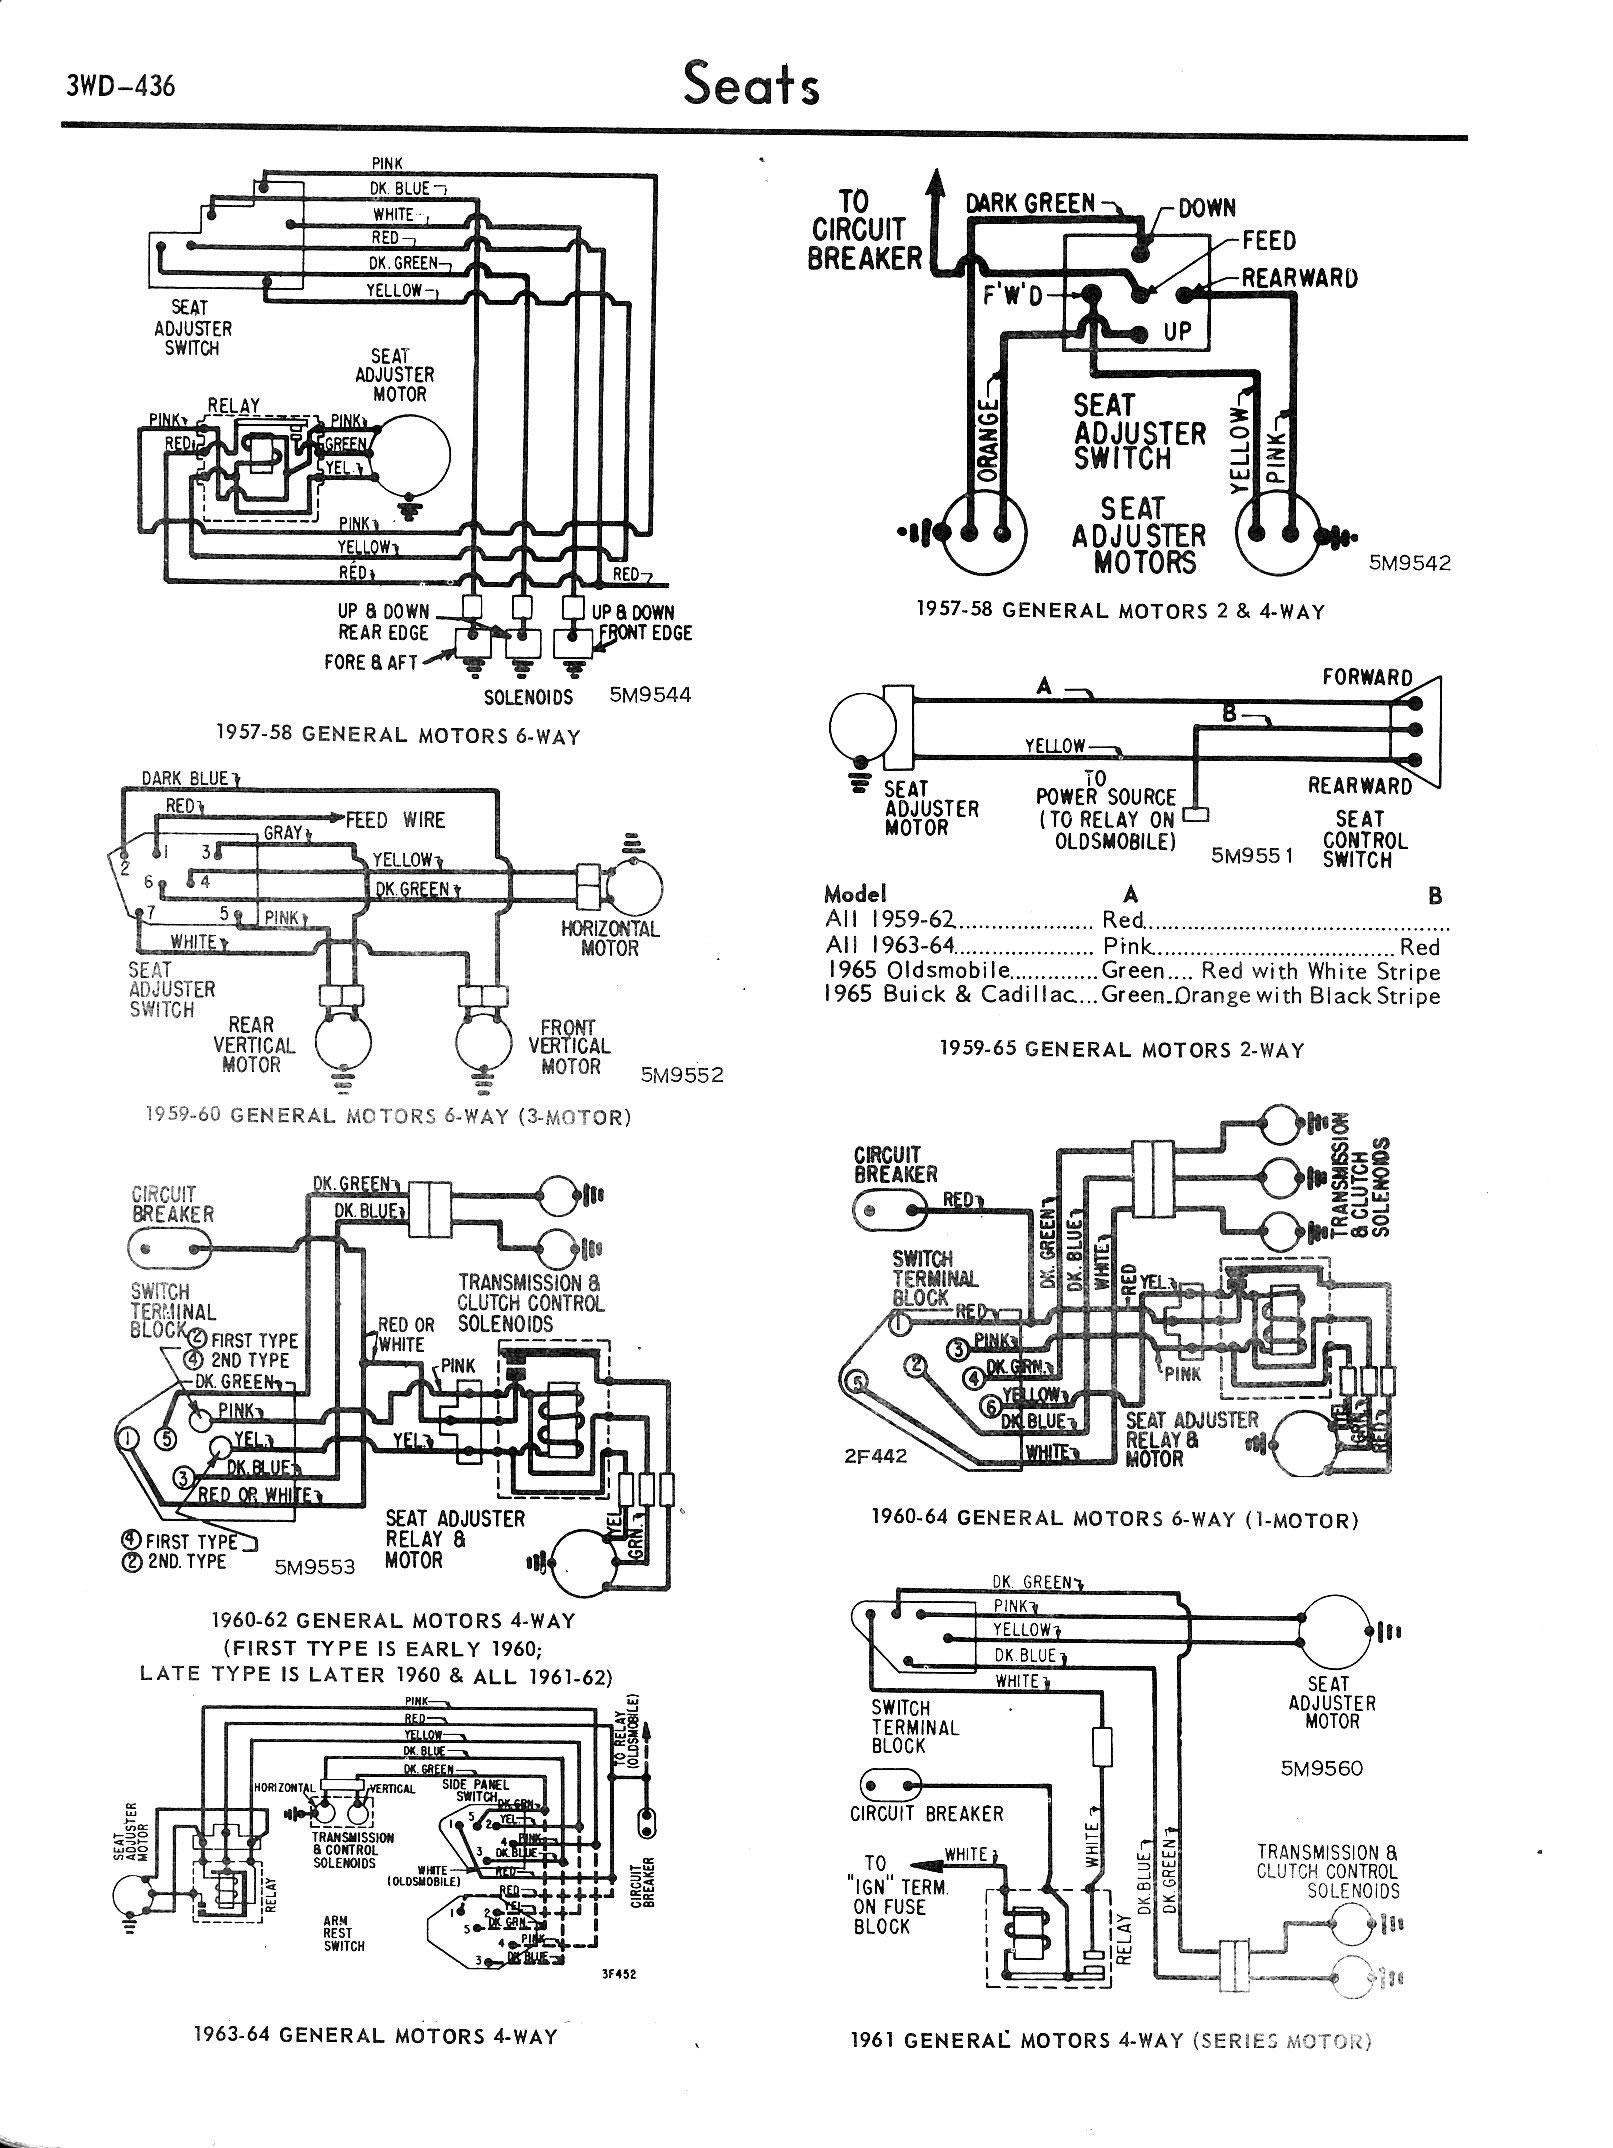 accessory relay wiring diagram 1997 honda civic ex fuse box 12 volt battery switch to